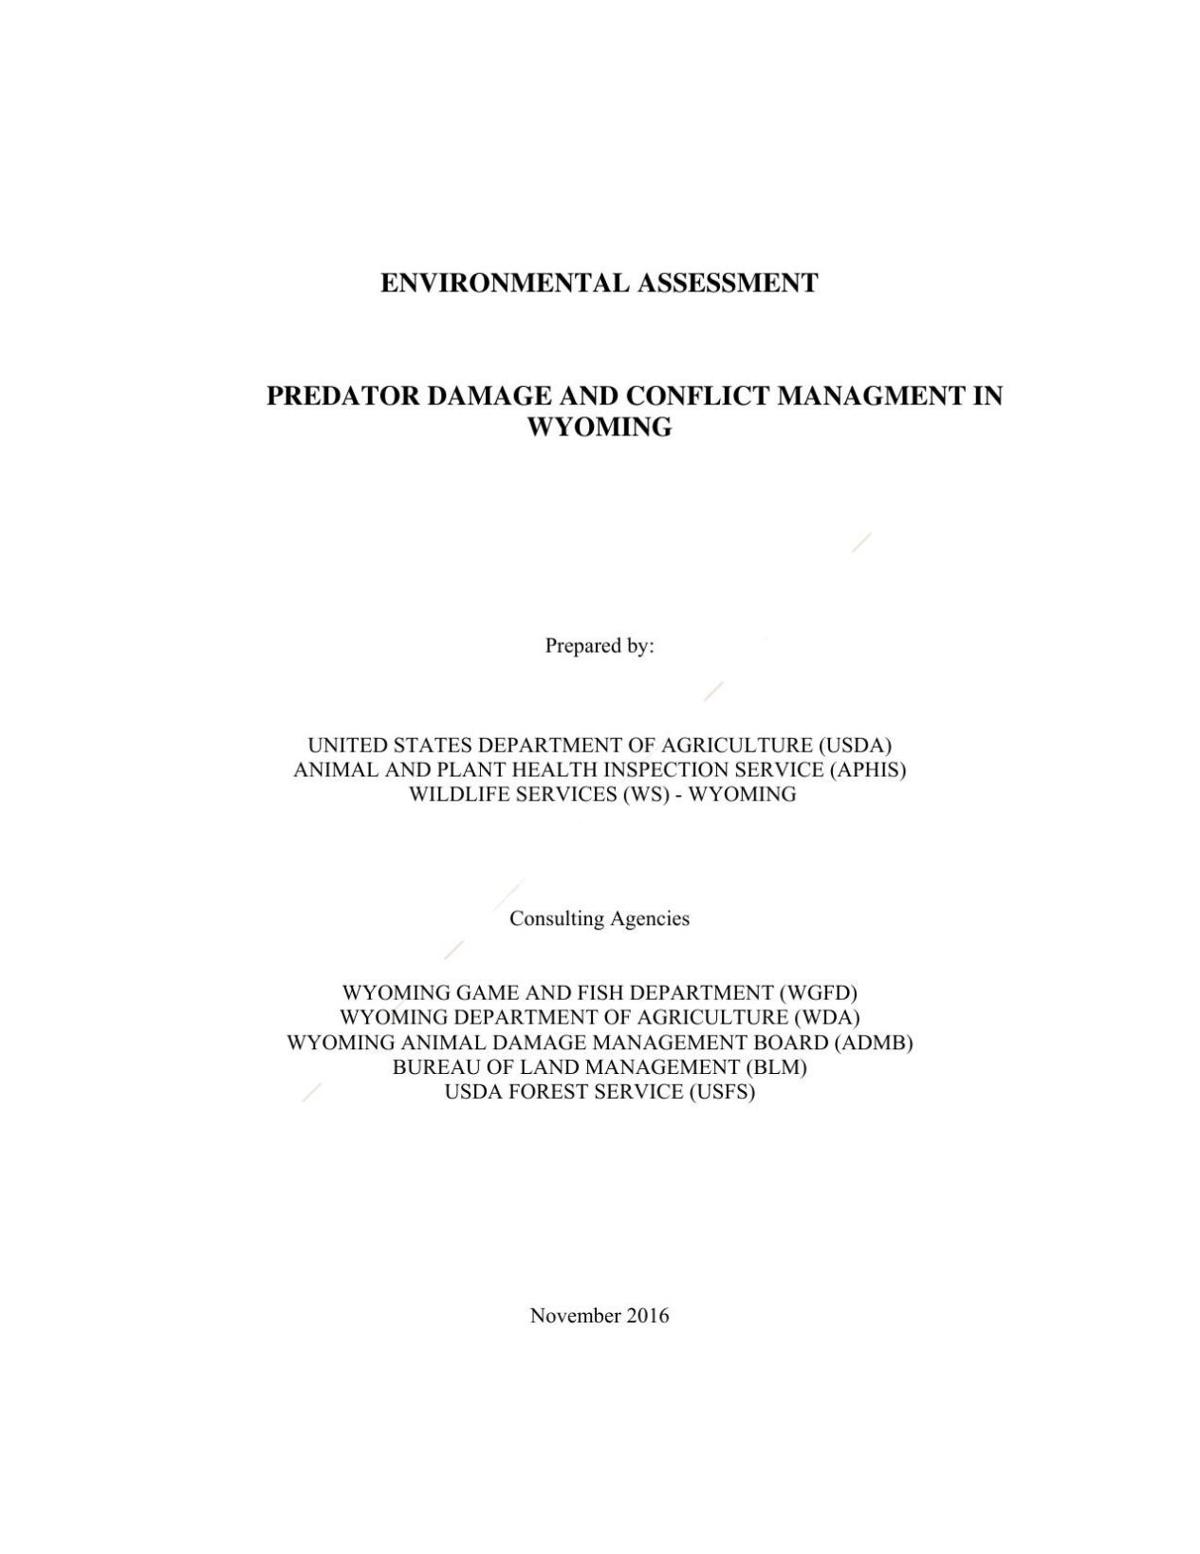 Wildlife Services-Wyoming environmental assessment